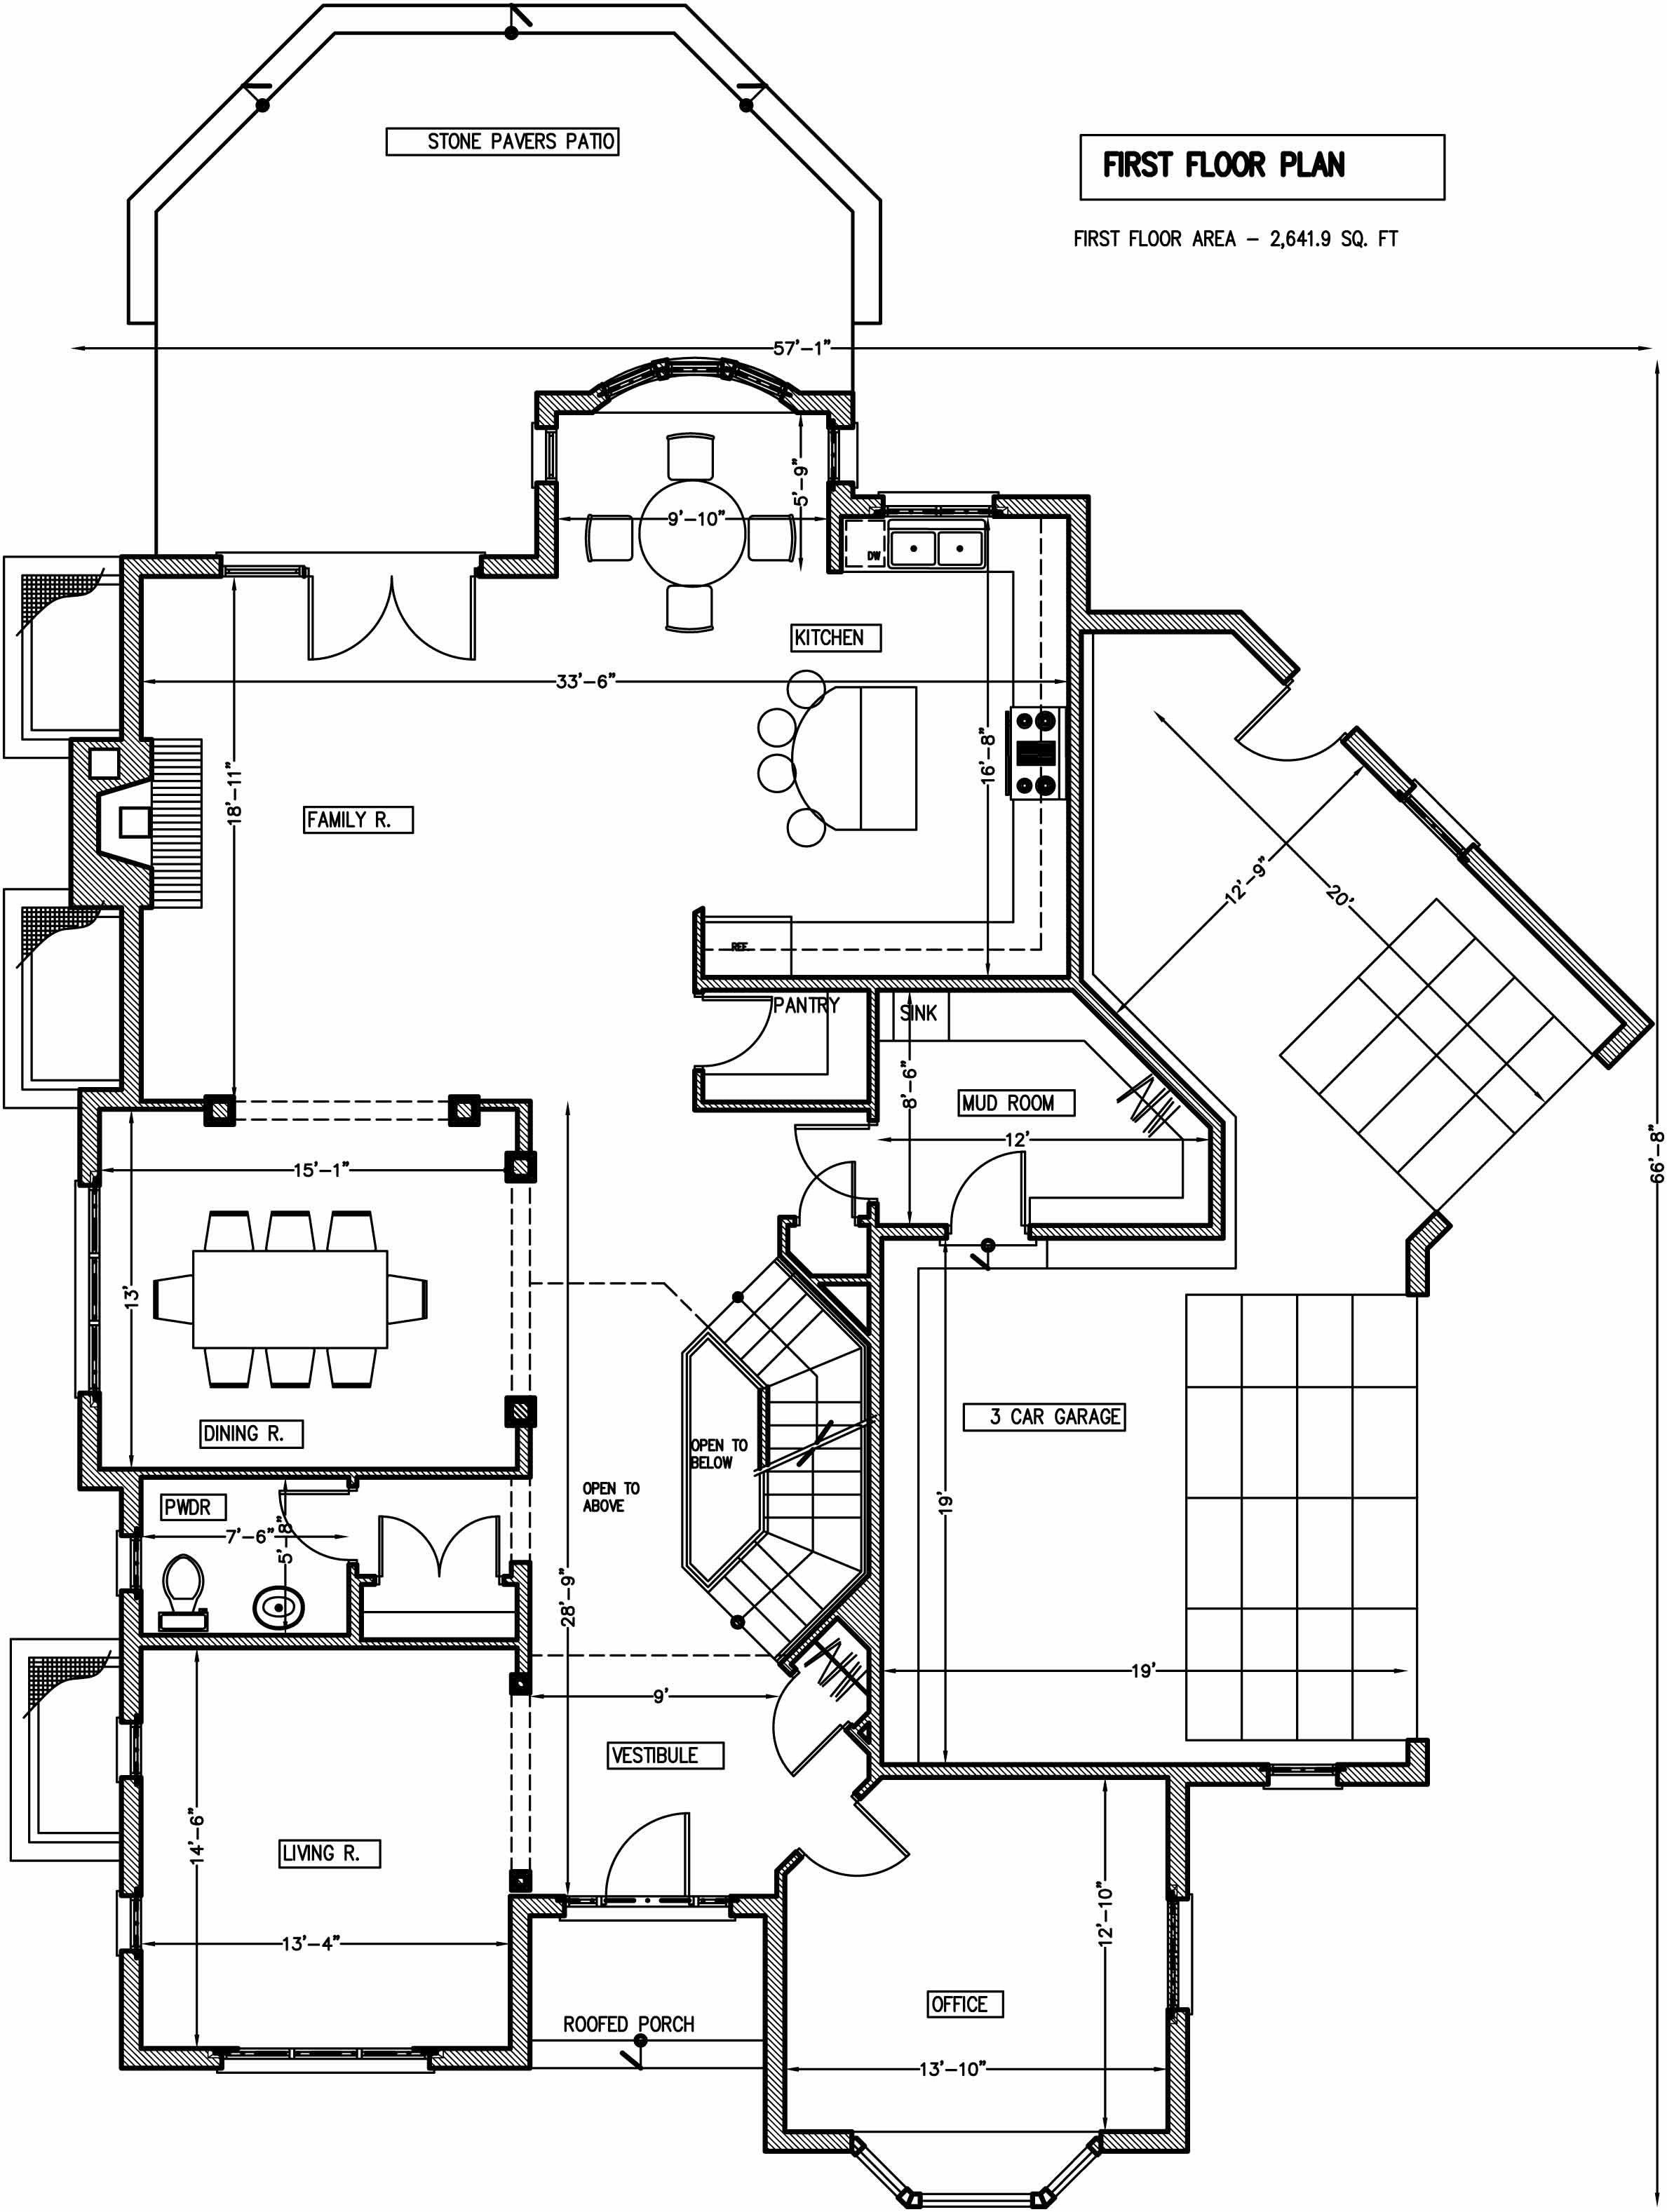 first floor plan / additions and new homes in Glenview by Greenleaf Developers